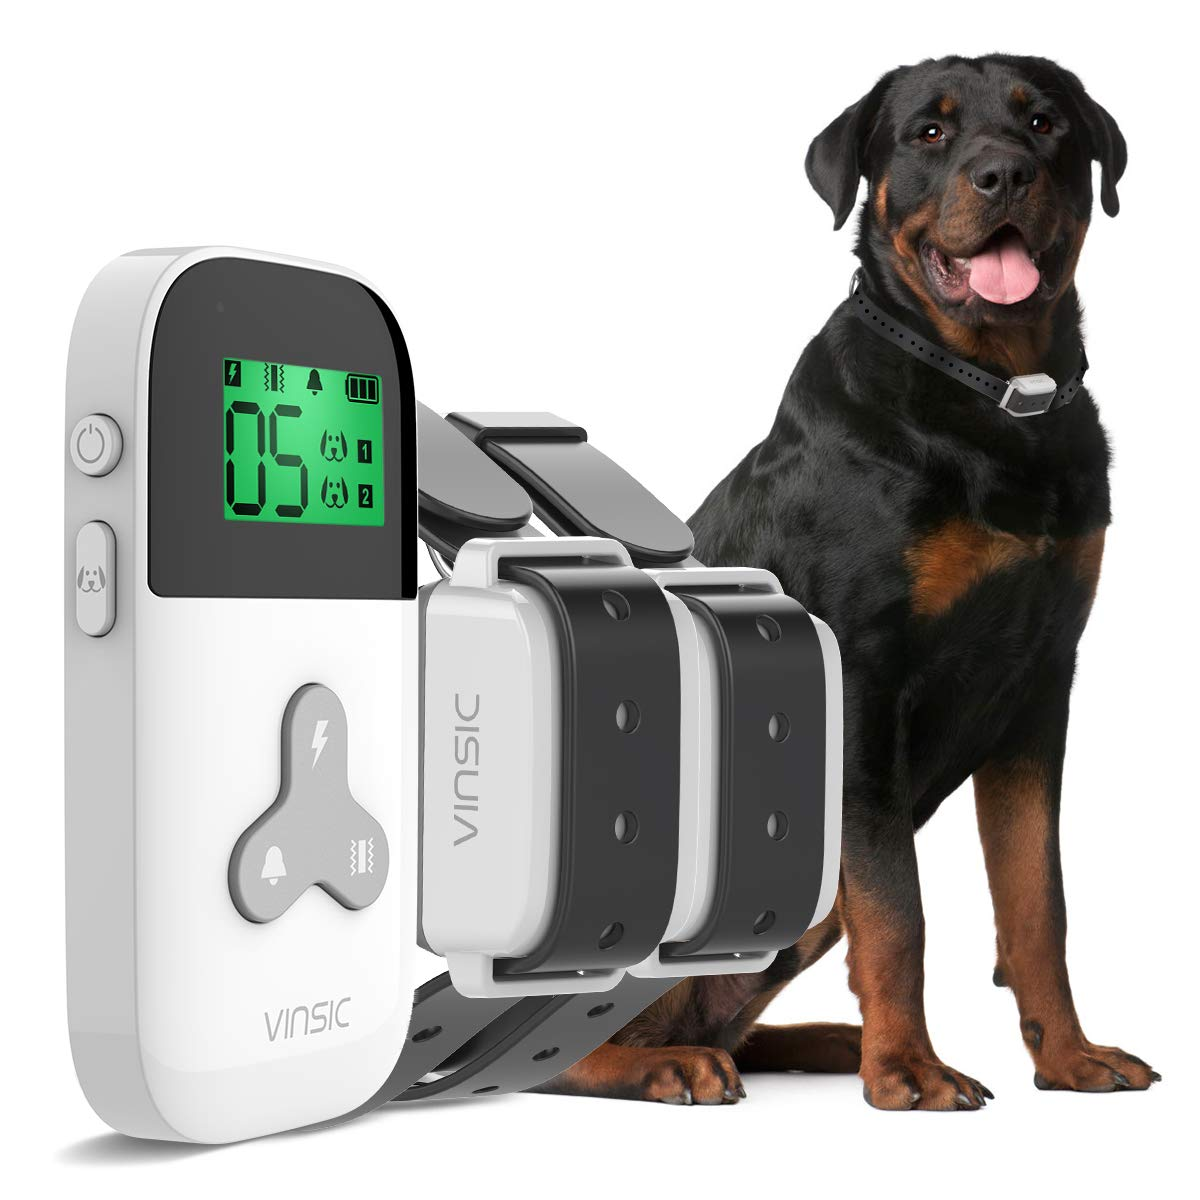 VINSIC Dog Shock Collars with Remote for 2 Dogs, Rainproof Dog Training Collars with 300yd Range Remote Control, for Small Big Dog bark Collar with LCD Display